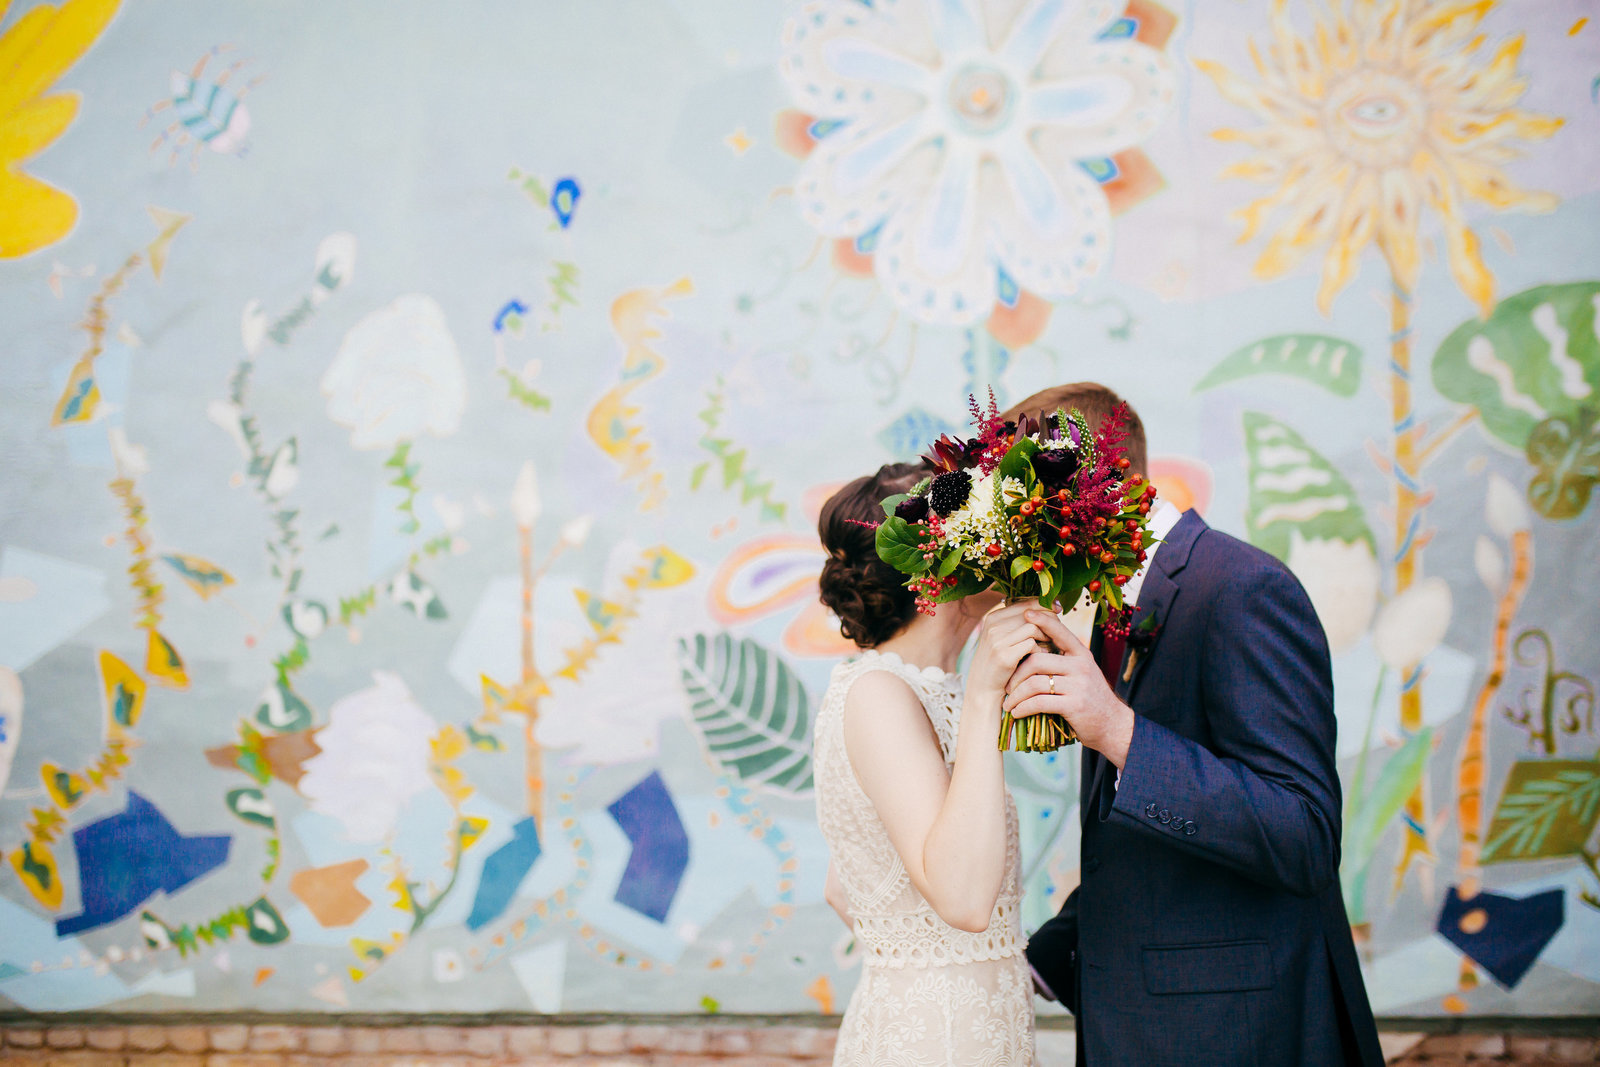 Lake Wedding in Dayton Tennessee by Amber Lowe Photo